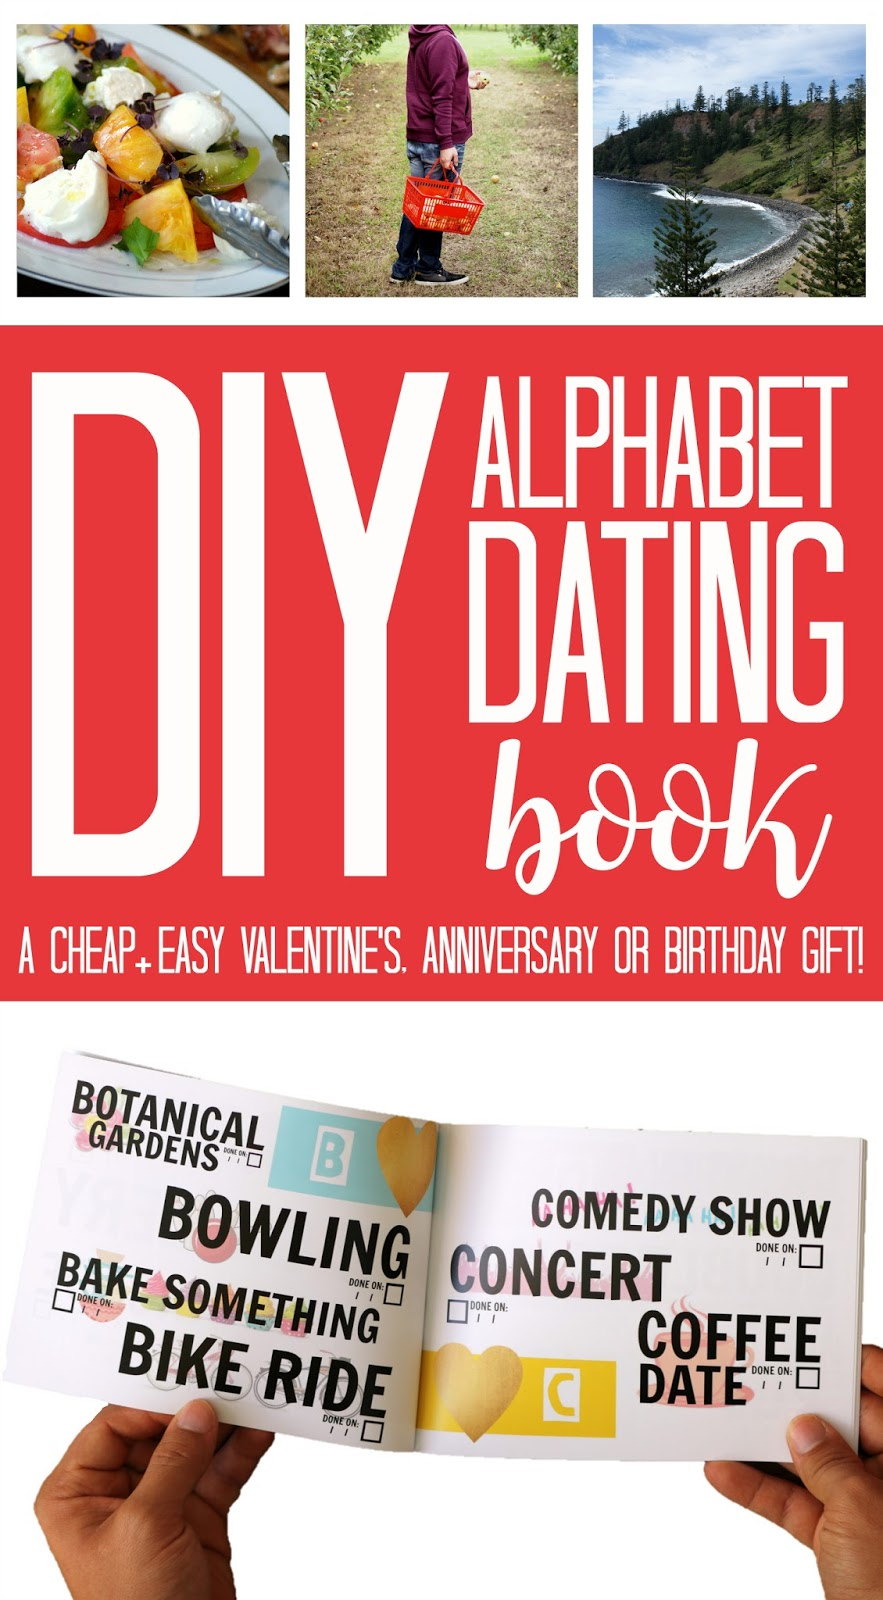 Southern In Law Diy Alphabet Dating Book A Cheap Easy And